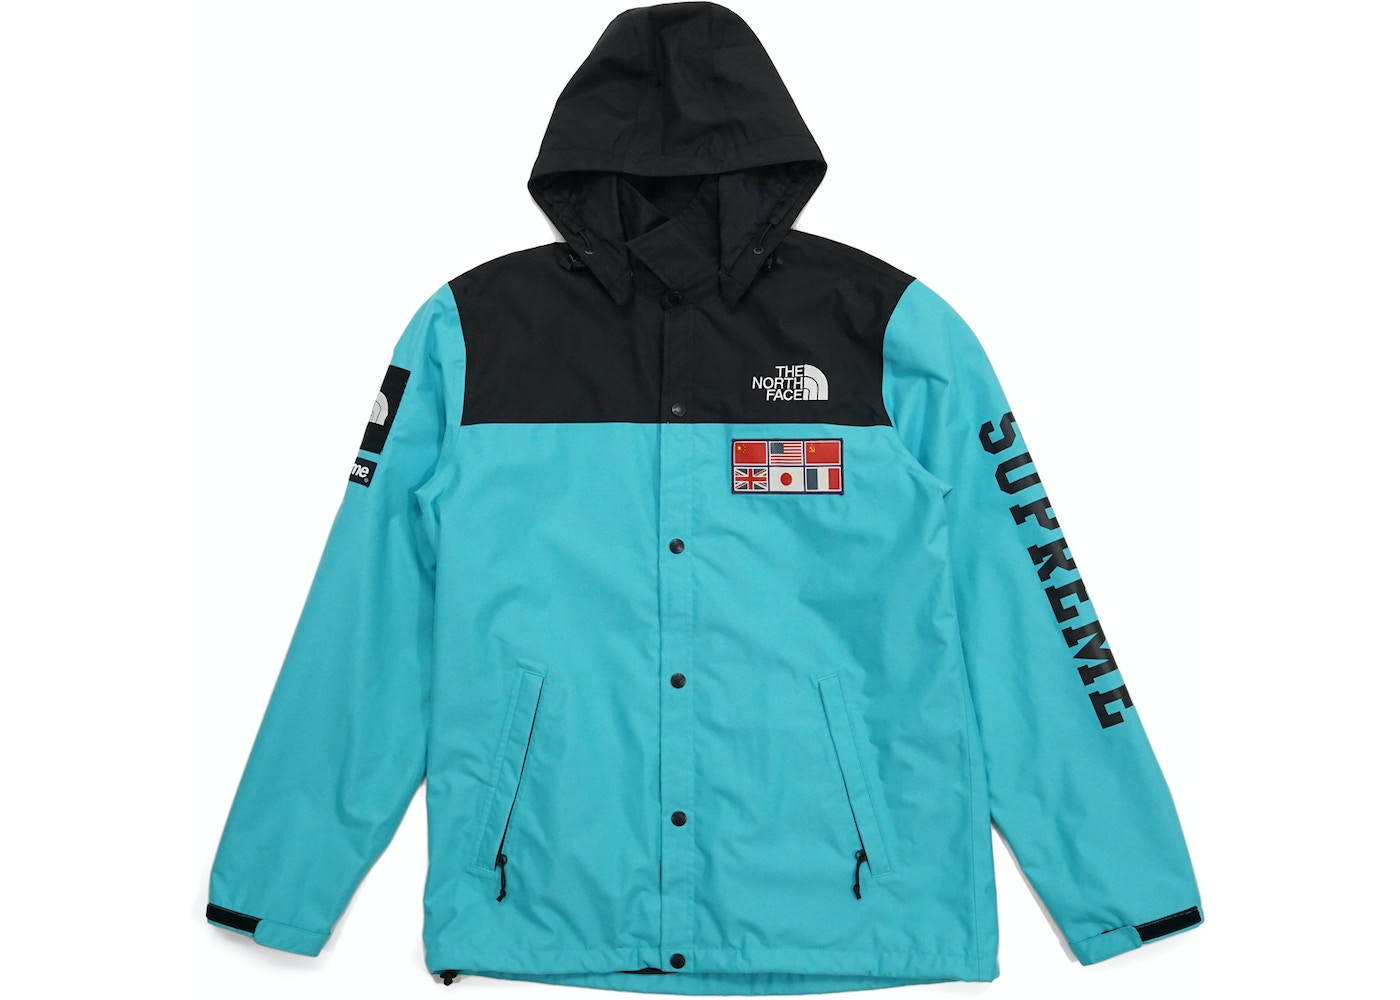 c4b0c155f Supreme The North Face Expedition Coaches Jacket Teal